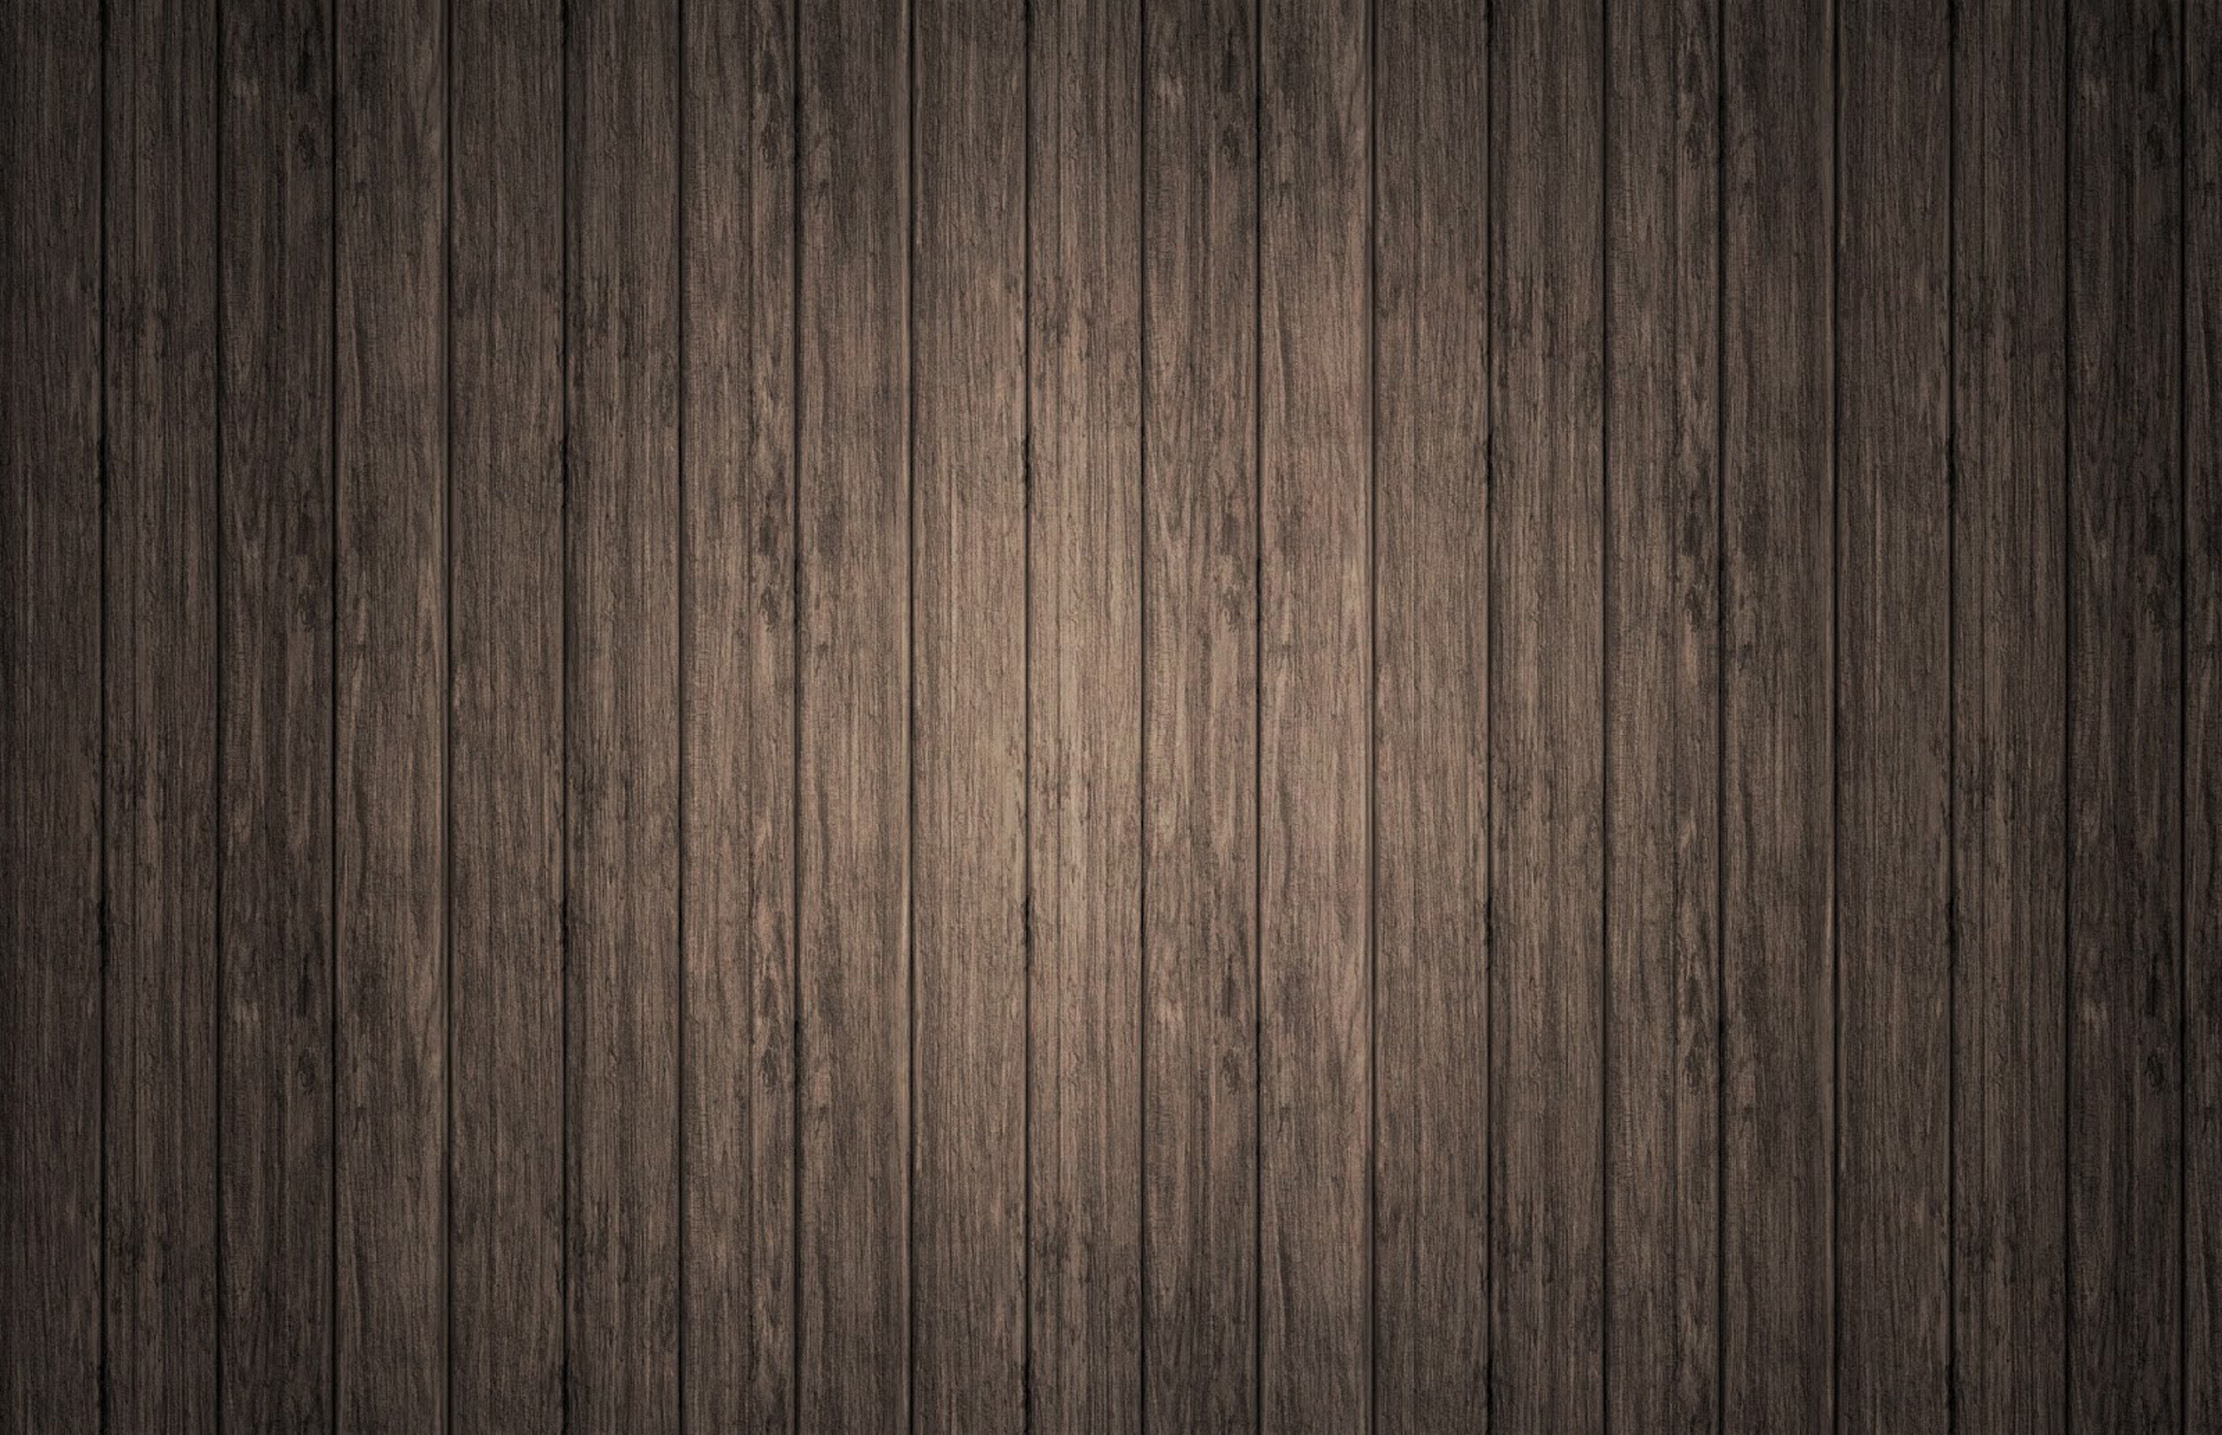 wooden background texture pattern images for website hd template psd